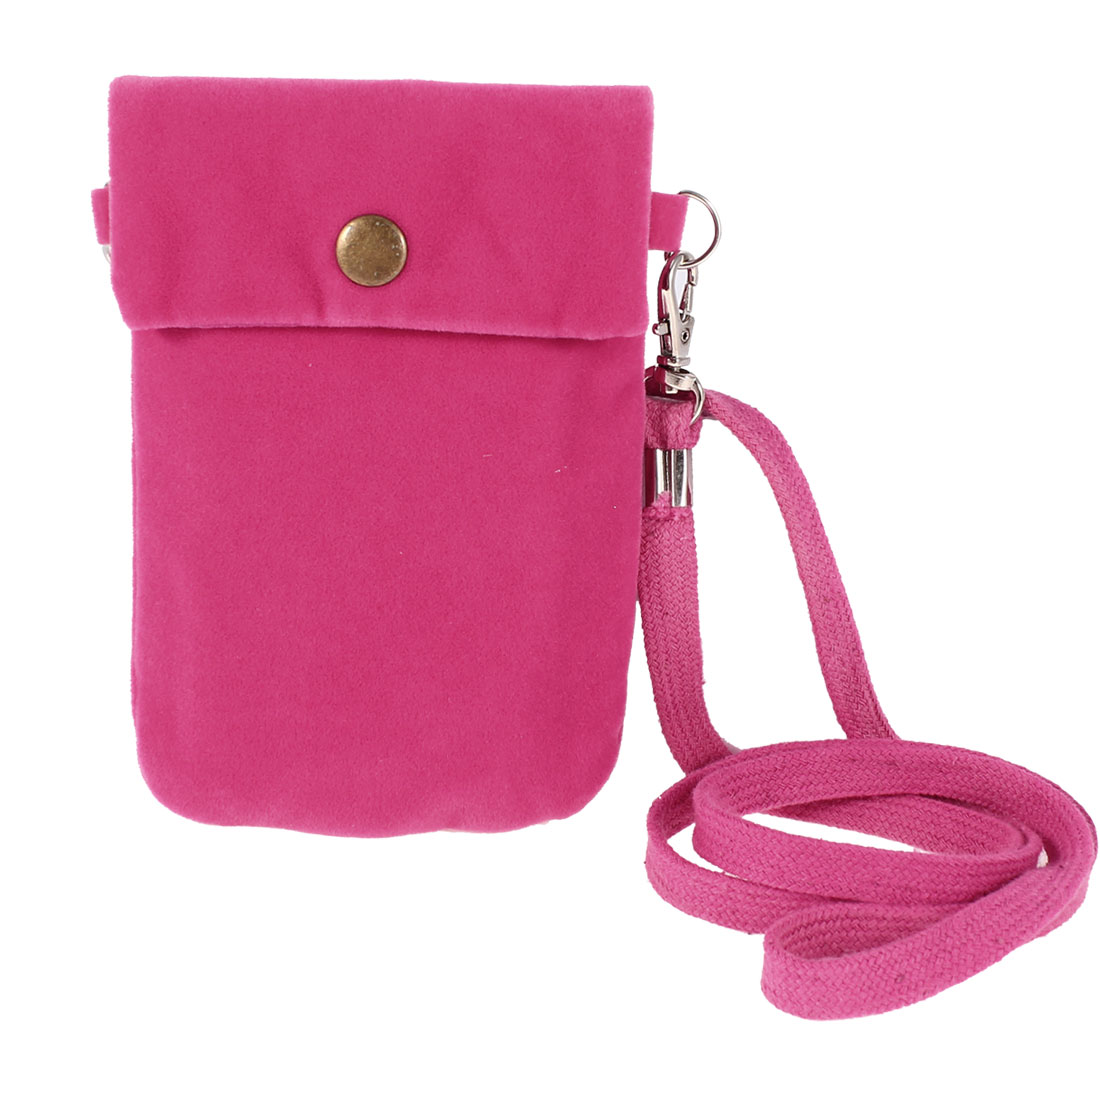 Amaranth Flannel Detachable Strap Pouch Bag Holder for Cell Phone